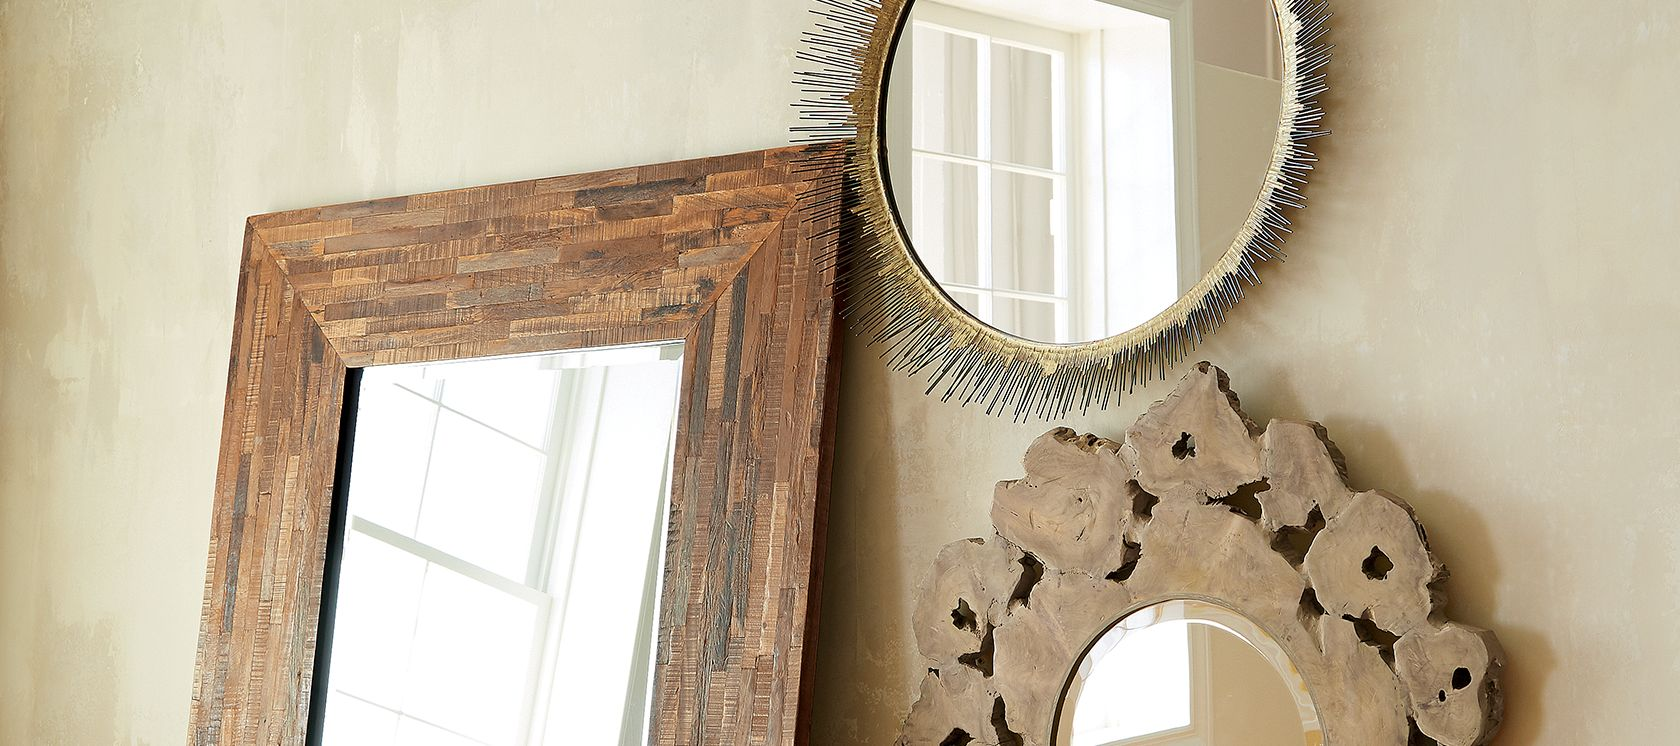 Full Length Decorative Mirror | Crate And Barrel Mirrors | Mirror With Ledge